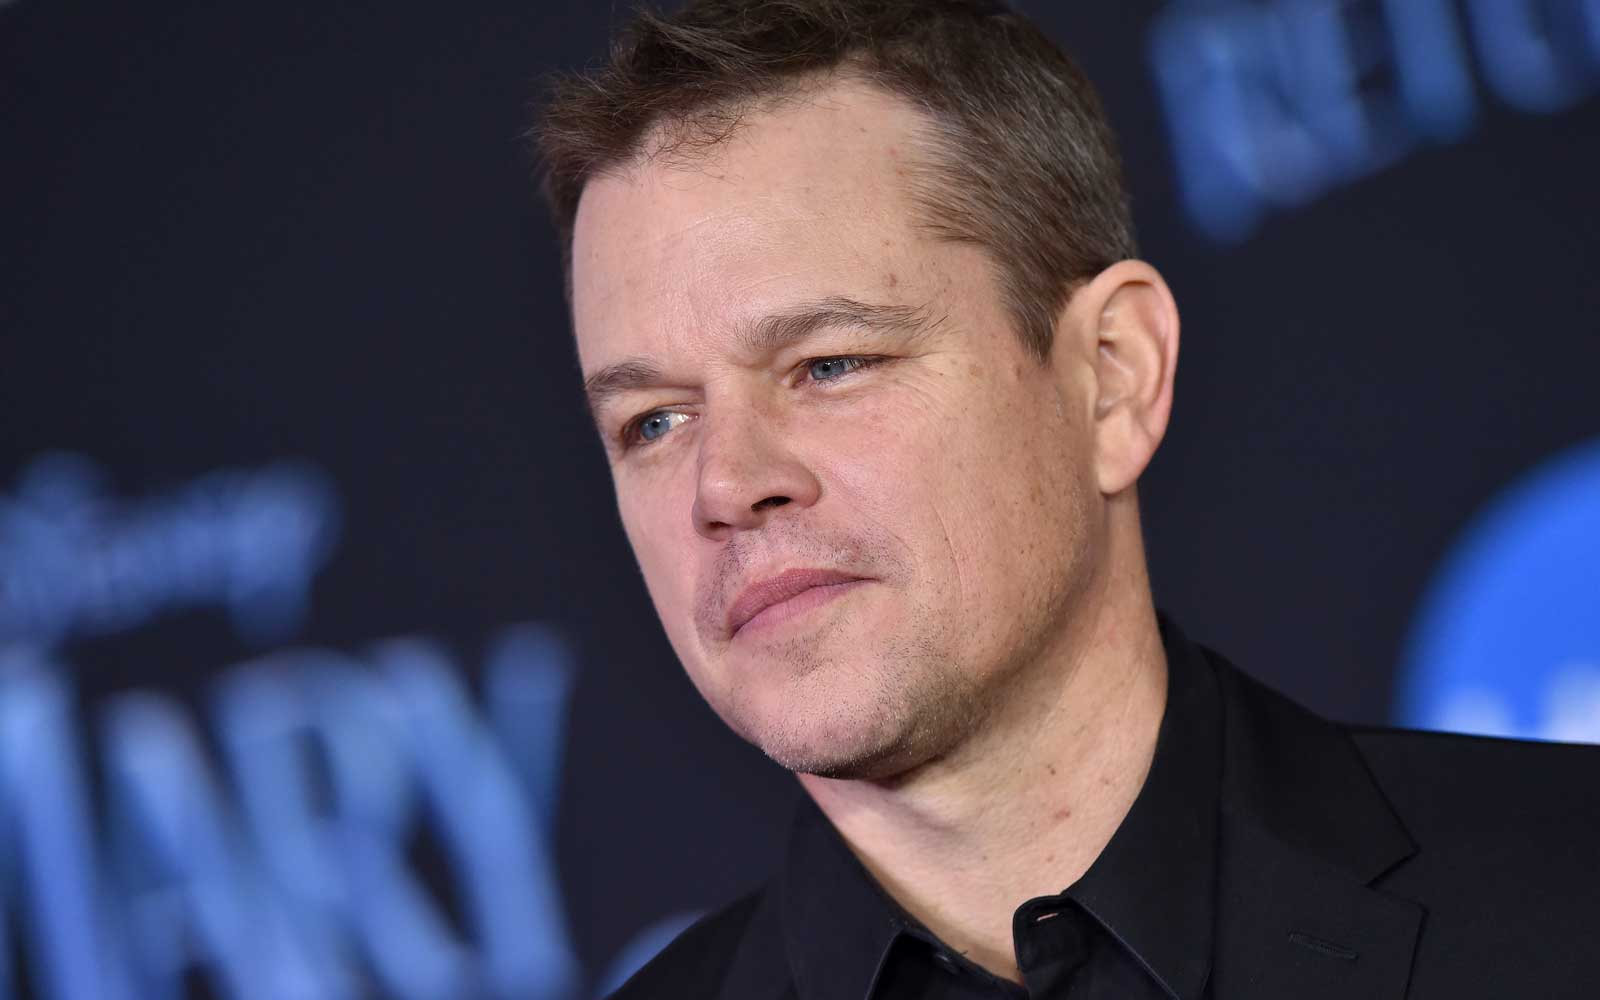 Matt Damon Had to Borrow a Suit for His Davos Speech After Swiss Air Lost His Luggage